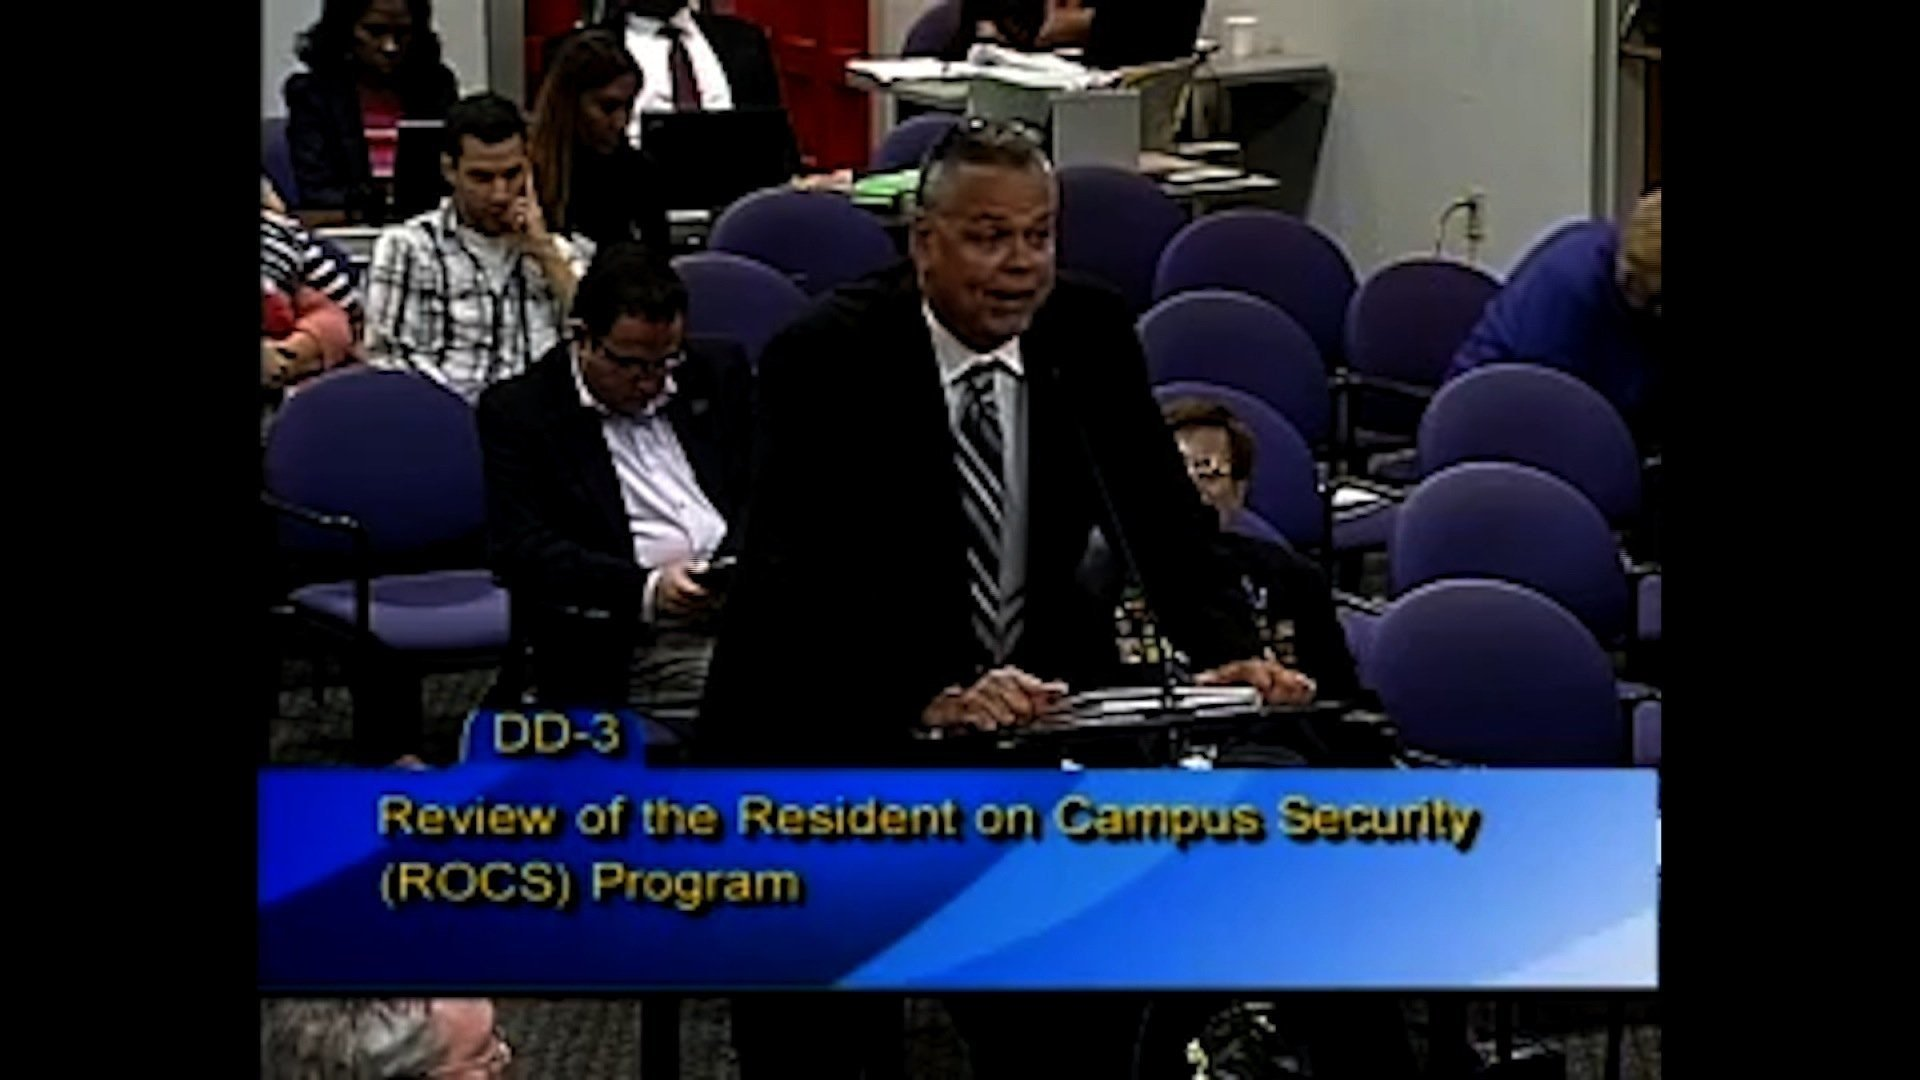 The former school resource officer criticized for his response to the Parkland school massacre is receiving more than $8,700 a month in state pension, Florida Department of Management Services spokeswoman Nina Ashley said Wednesday.